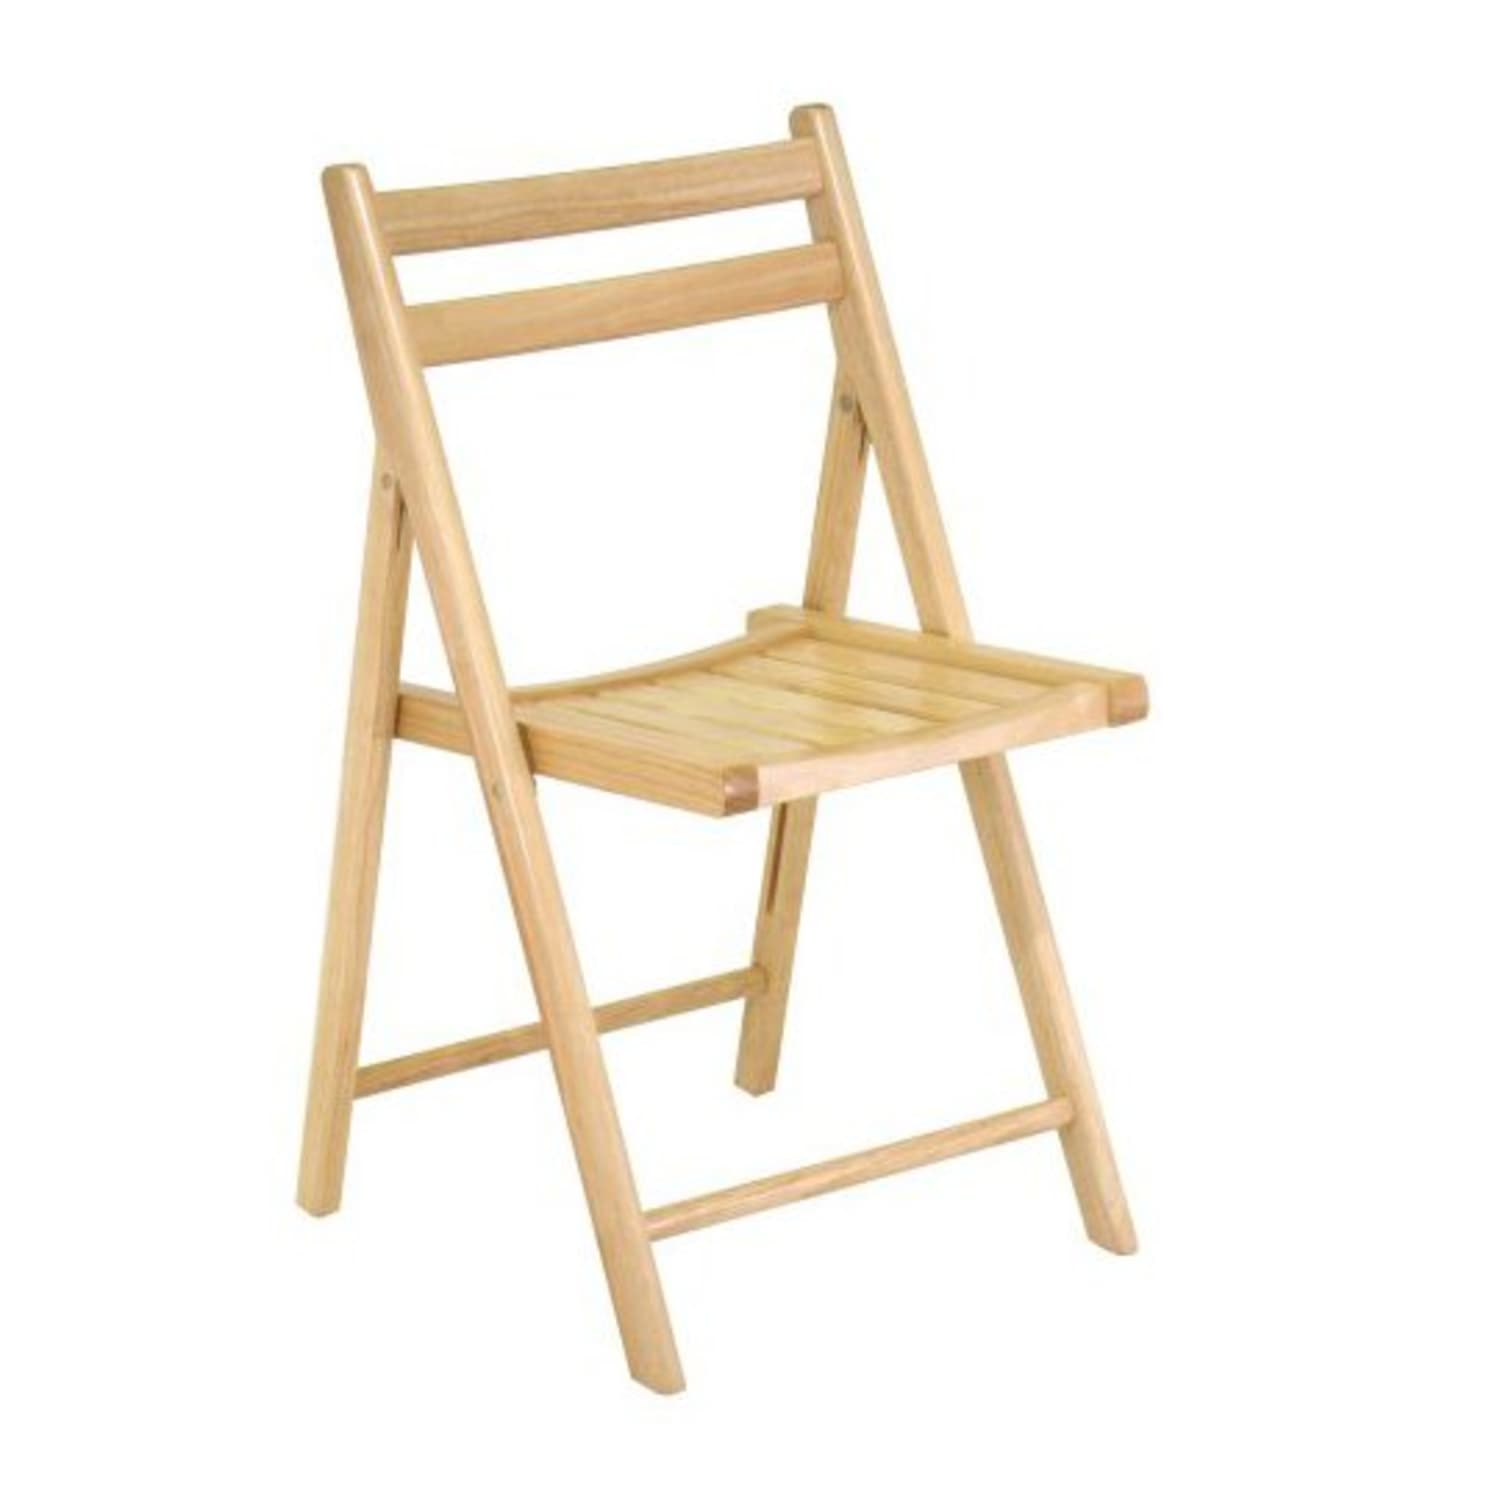 5 Folding Chairs To Order Now If You Re Hosting